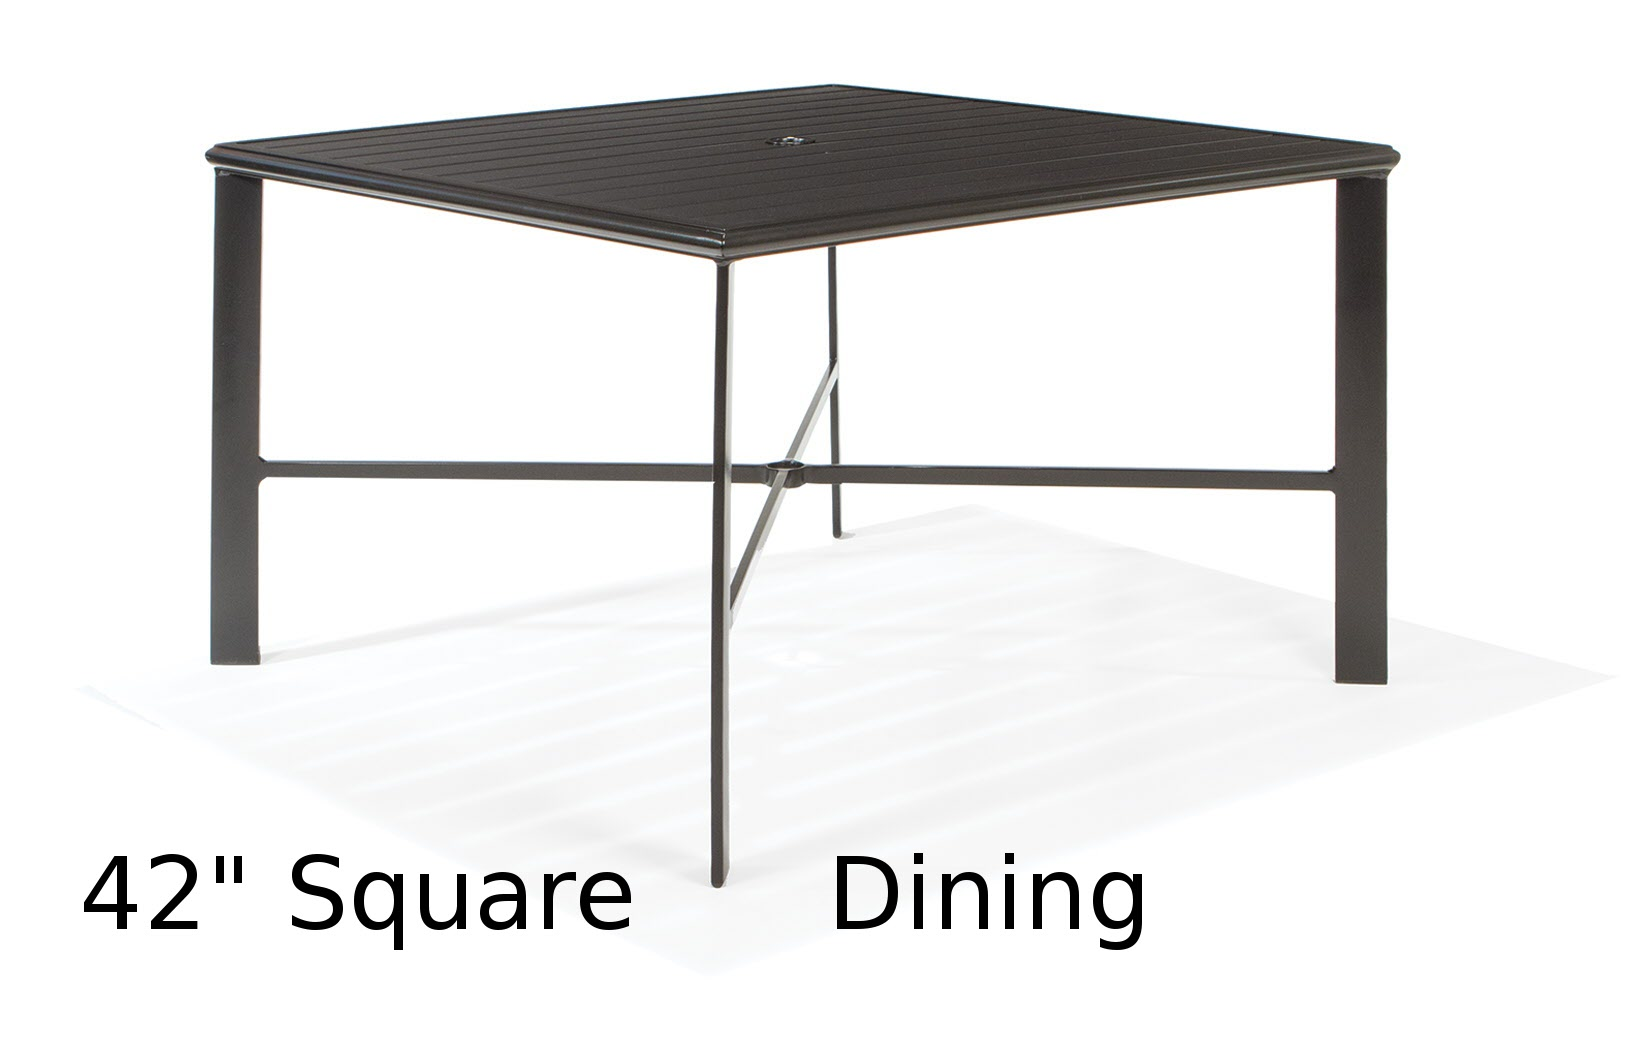 M9742-ST  43 Inch Square Aluminum Slat Top Dining Table